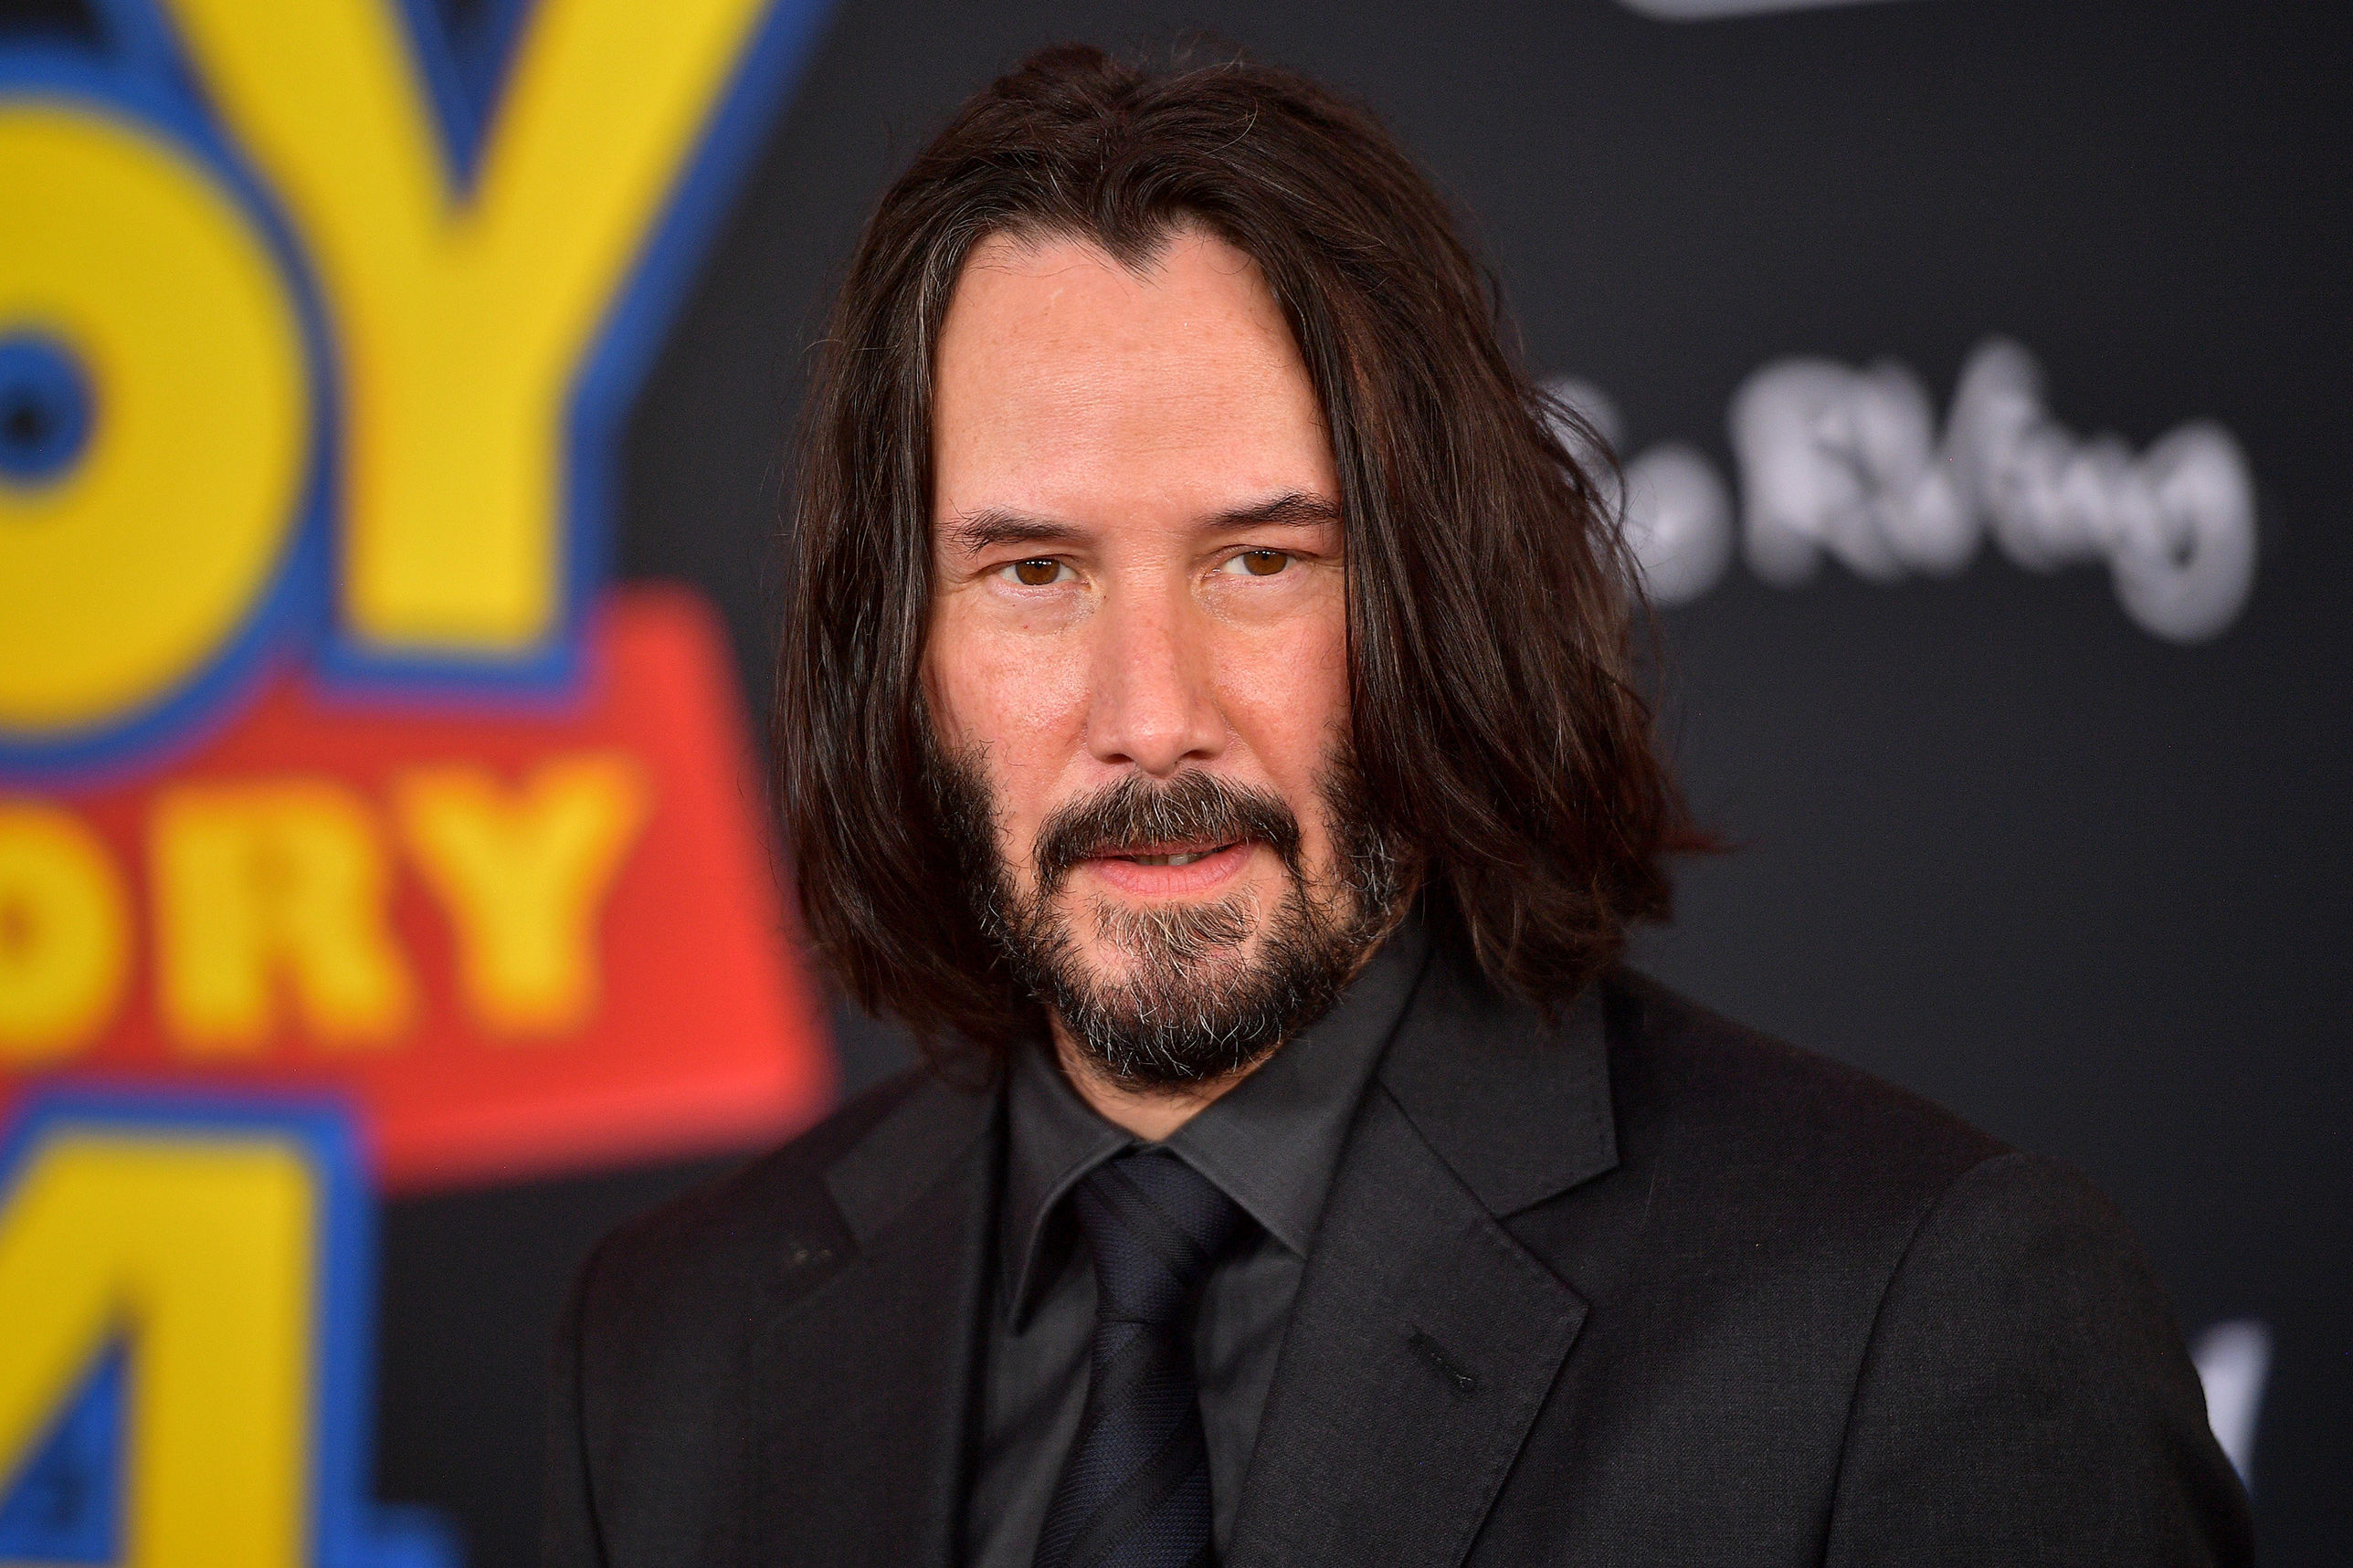 Keanu Reeves Leaves Touching Message on Family's Yard Sign While Filming in Louisiana